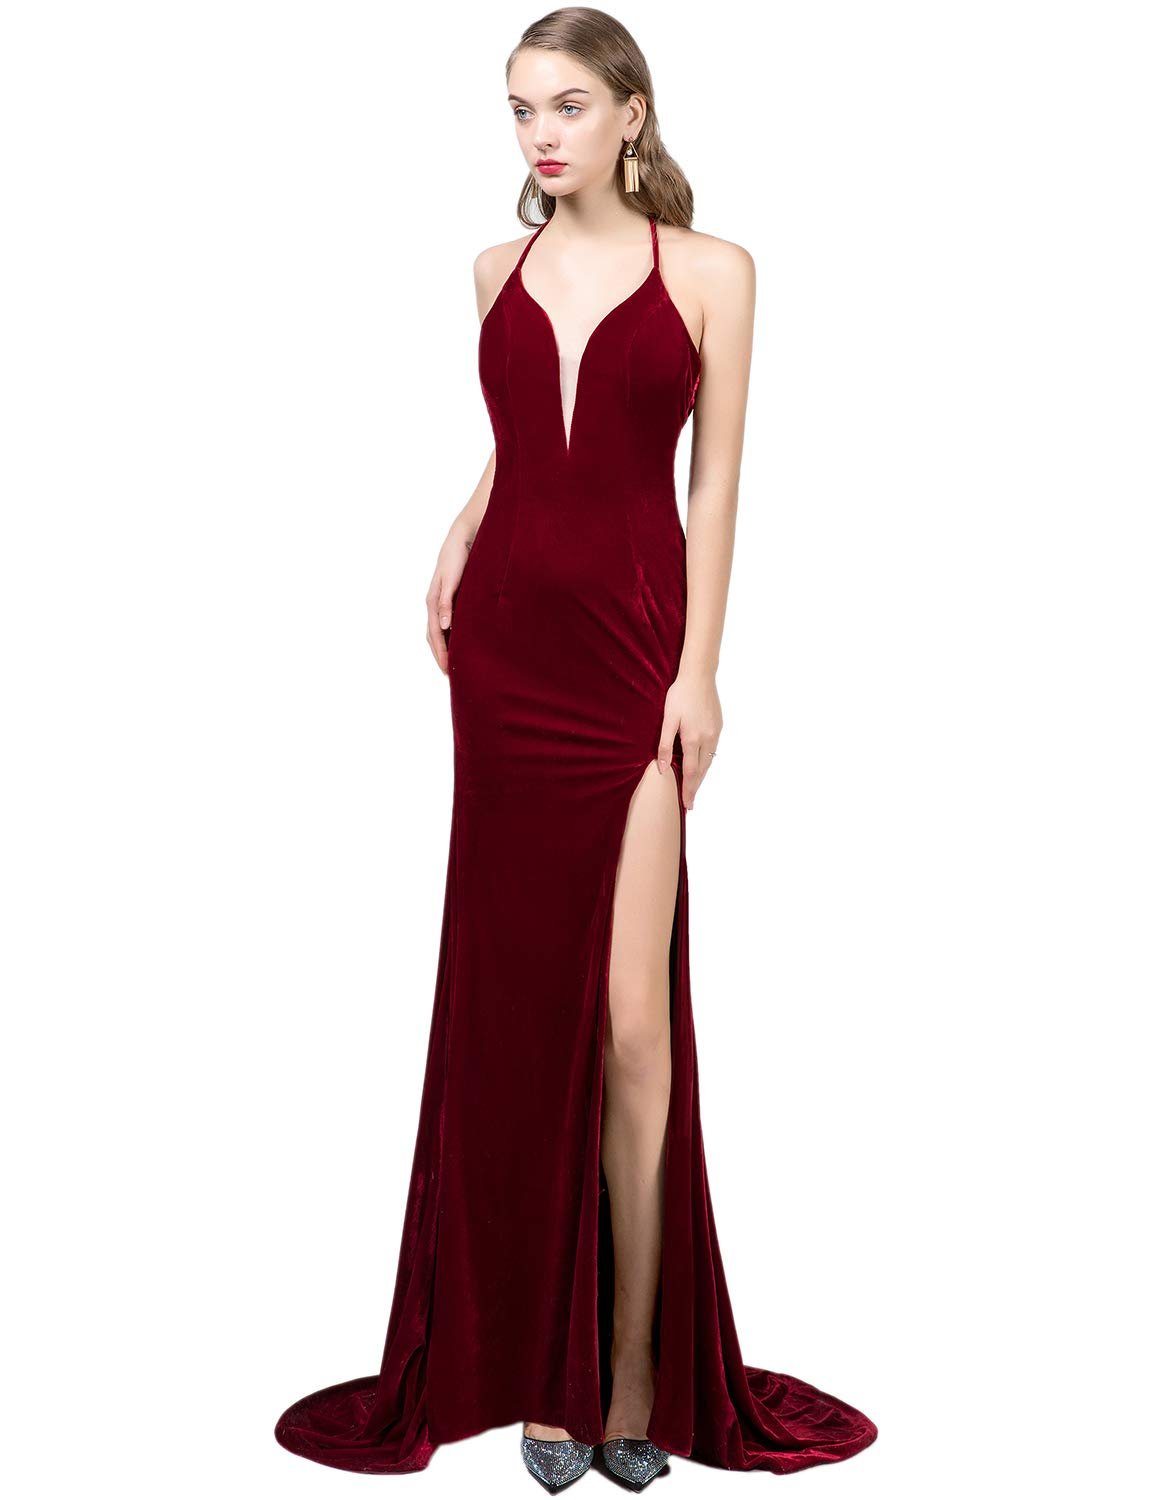 9376e17c99 Sexy Plus Size Evening Dresses 2019 Halter Prom Dress for Women Velvet  Empire Waist Split Side Formal Ball Gown Christmas Dresses MSH045 Burgundy  Size ...